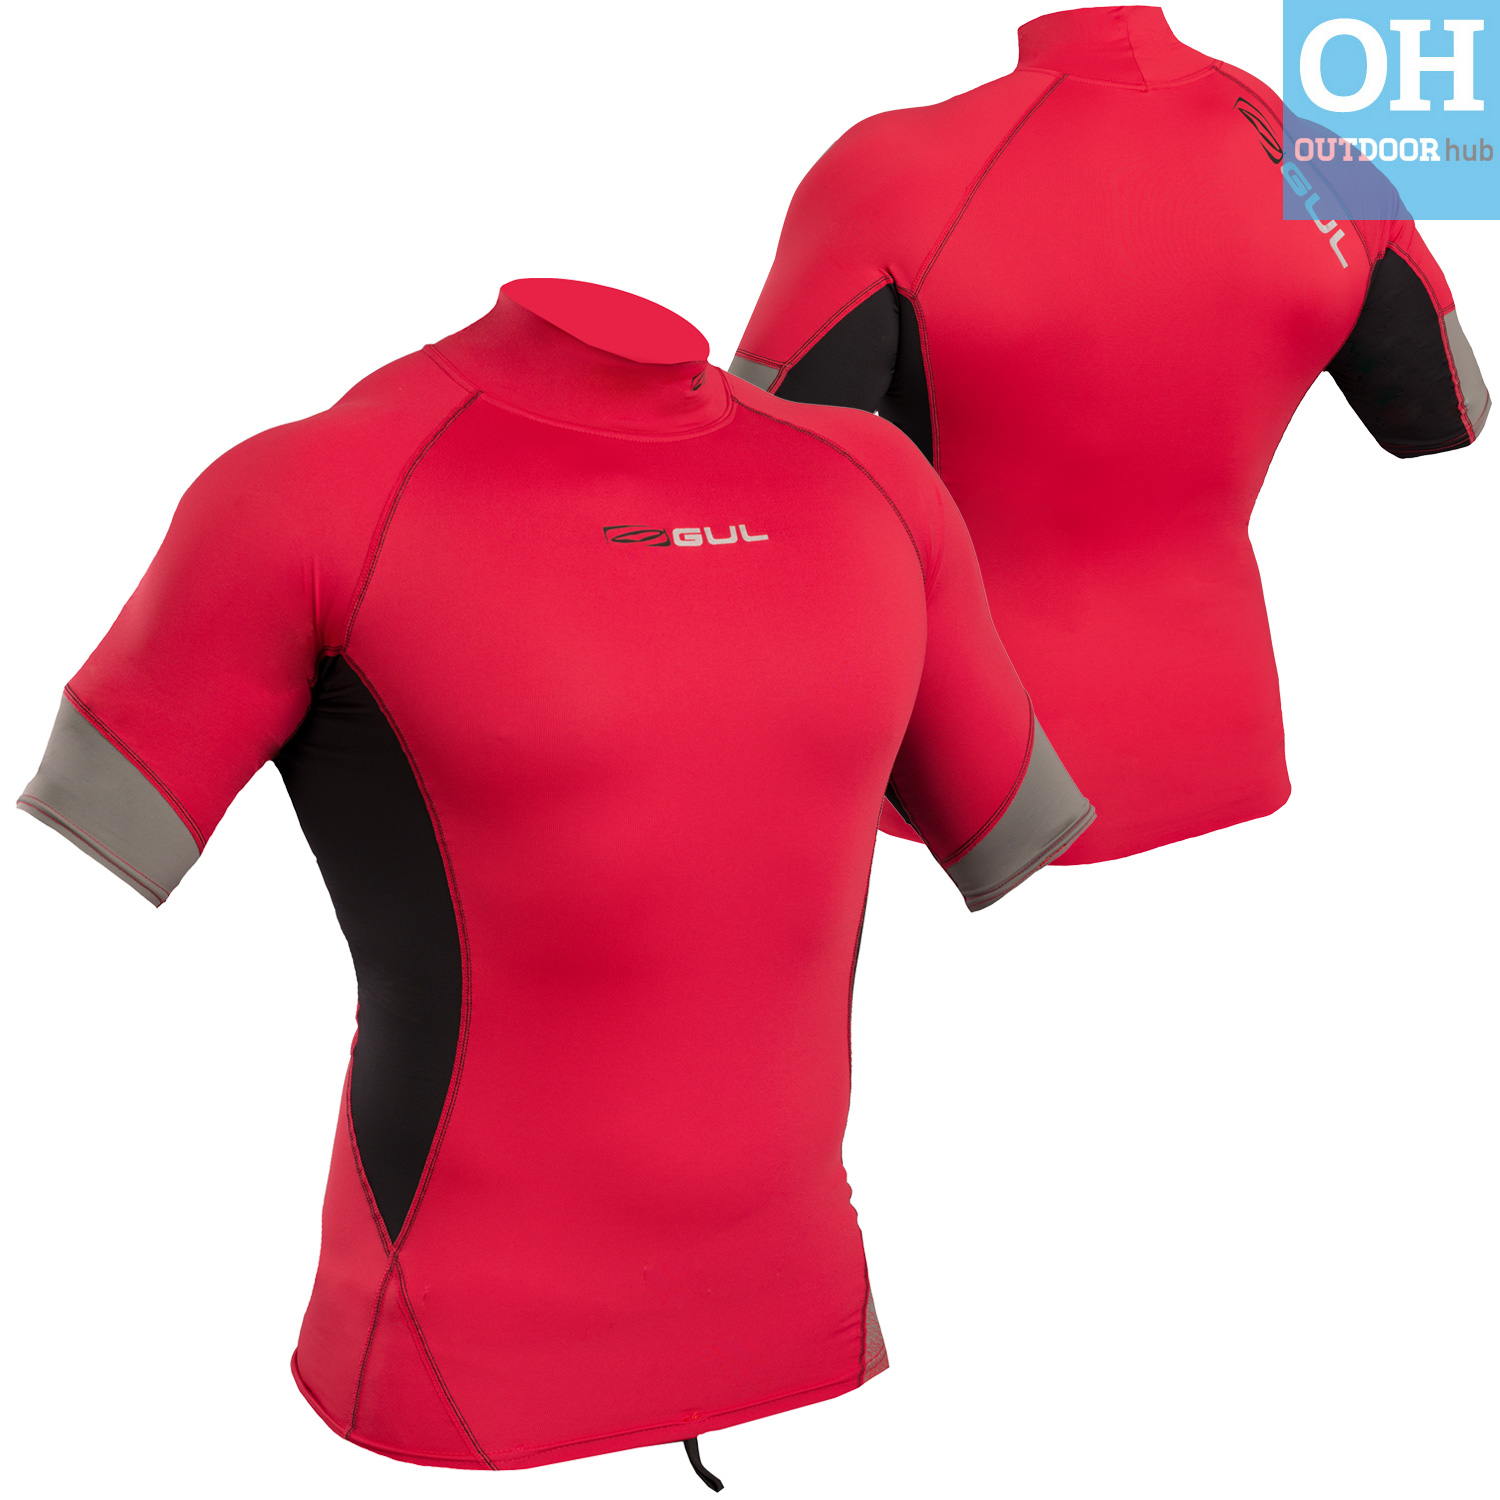 Gul-Xola-Mens-Short-Sleeve-Rash-Guard-Vest-Wetsuit-Top-UV-50-Surf-Swim-Dive thumbnail 36